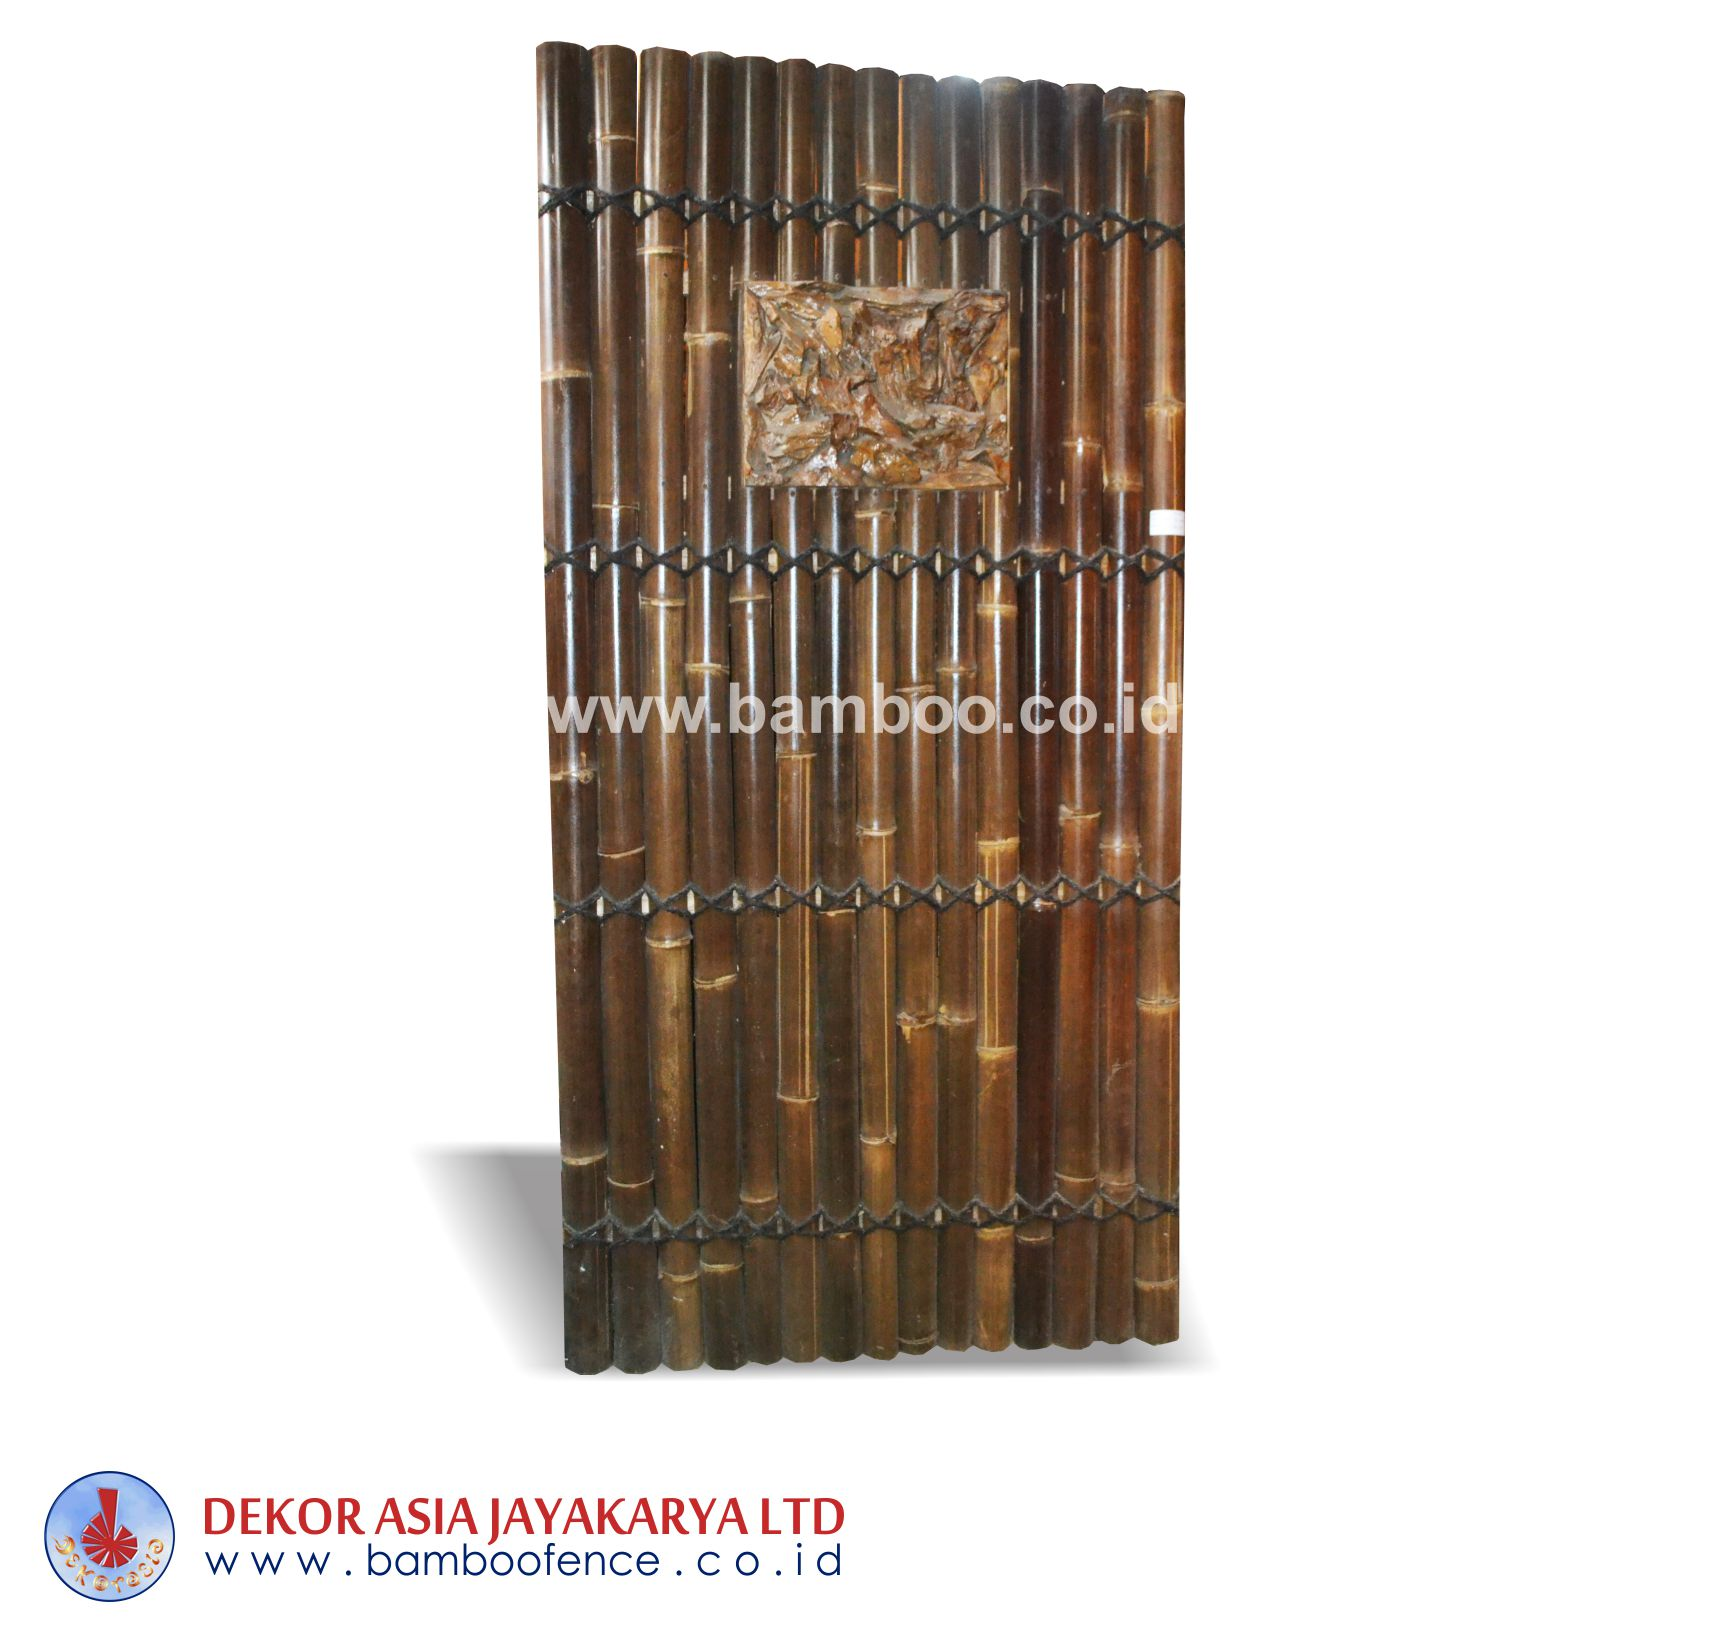 Half Cut Bamboo Fence 4 Blades Back, Black Coco Strap Wood Carving